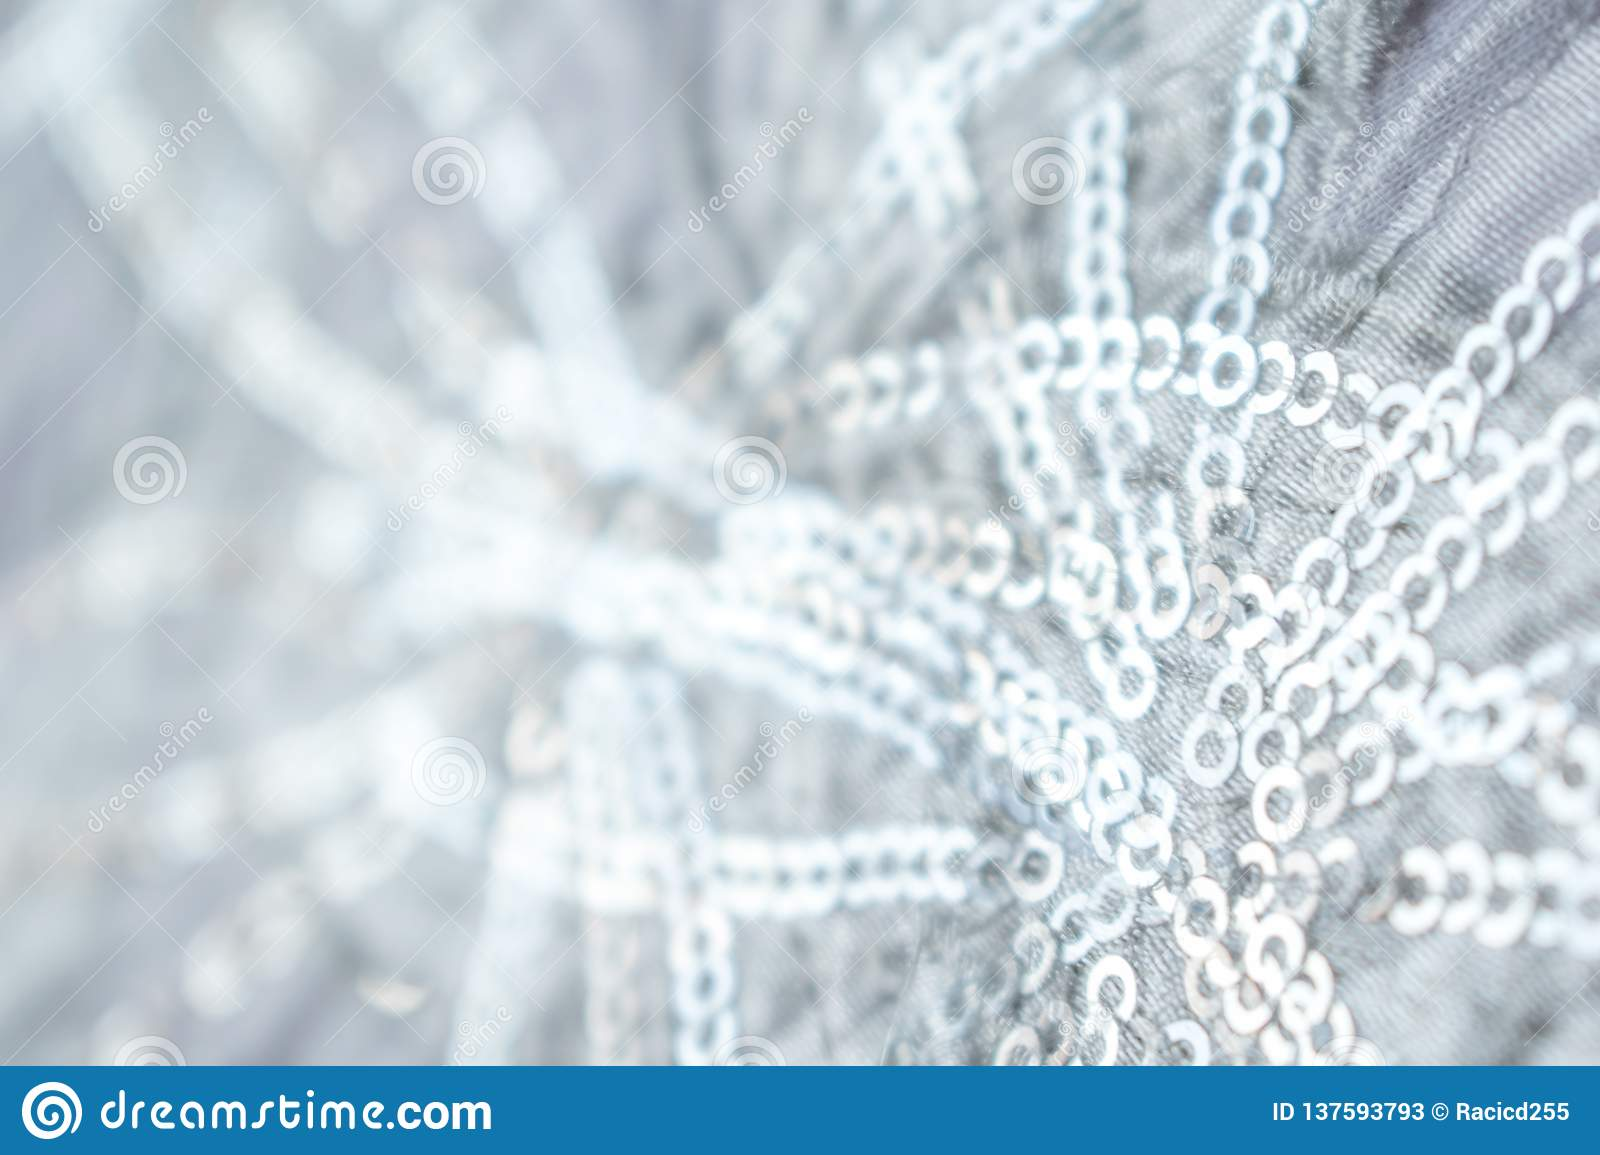 Blue and Silver Frozen Snow Winter Sparkling Stars Glitter background. Holiday, Christmas, New Year abstract texture. Golden, conc